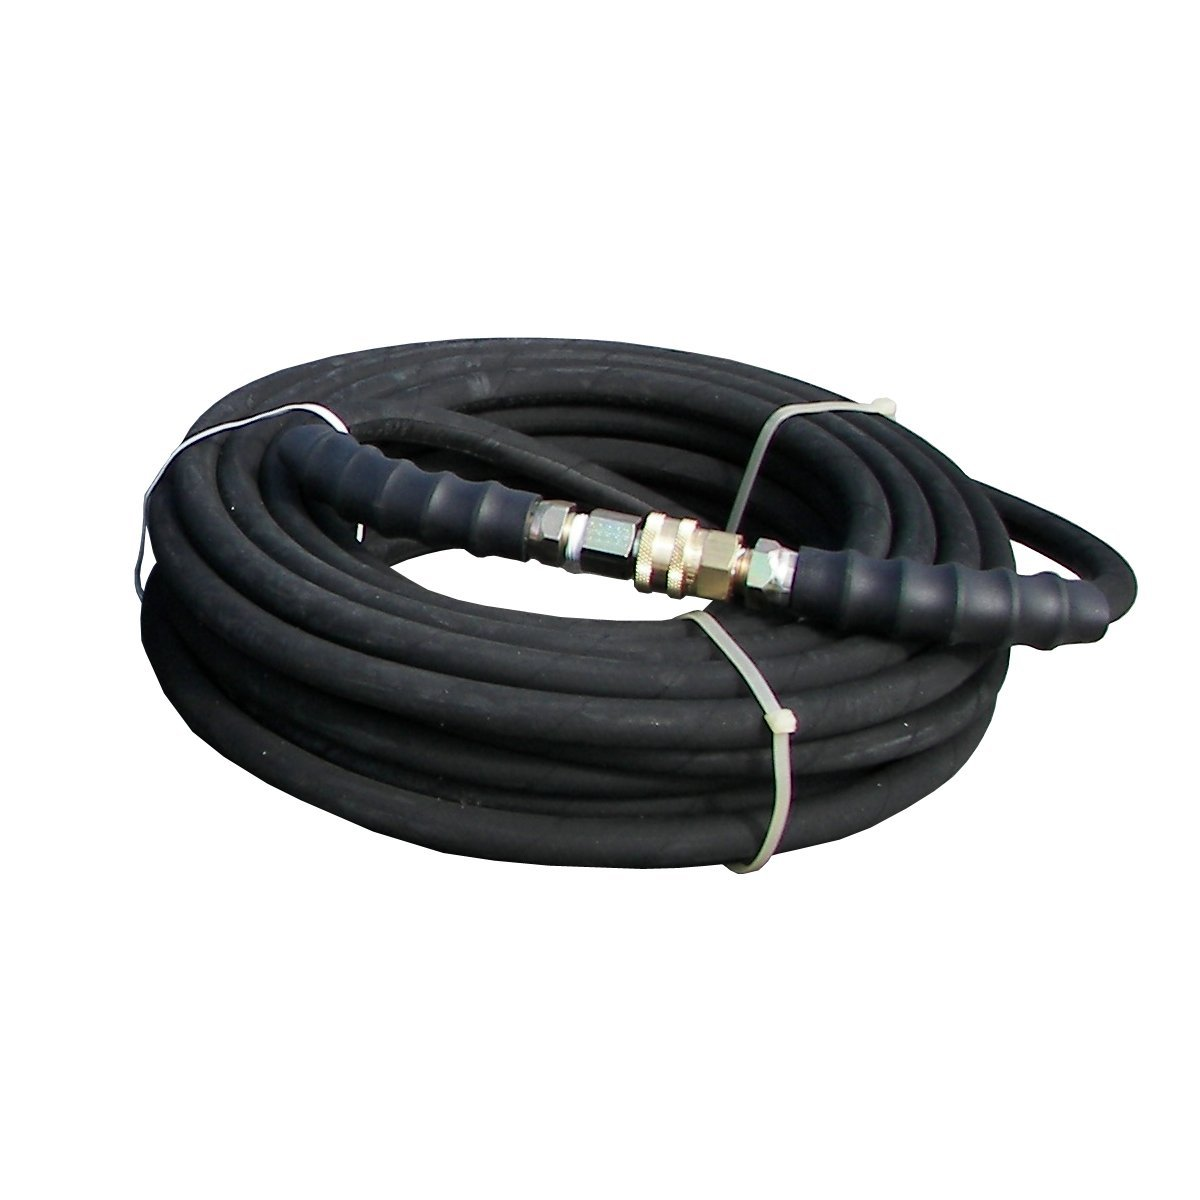 BE Pressure 85.238.153 Pressure Washer 1 Wire Hose 50 ft X 3/8 ID 4200 psi with QC Assembly